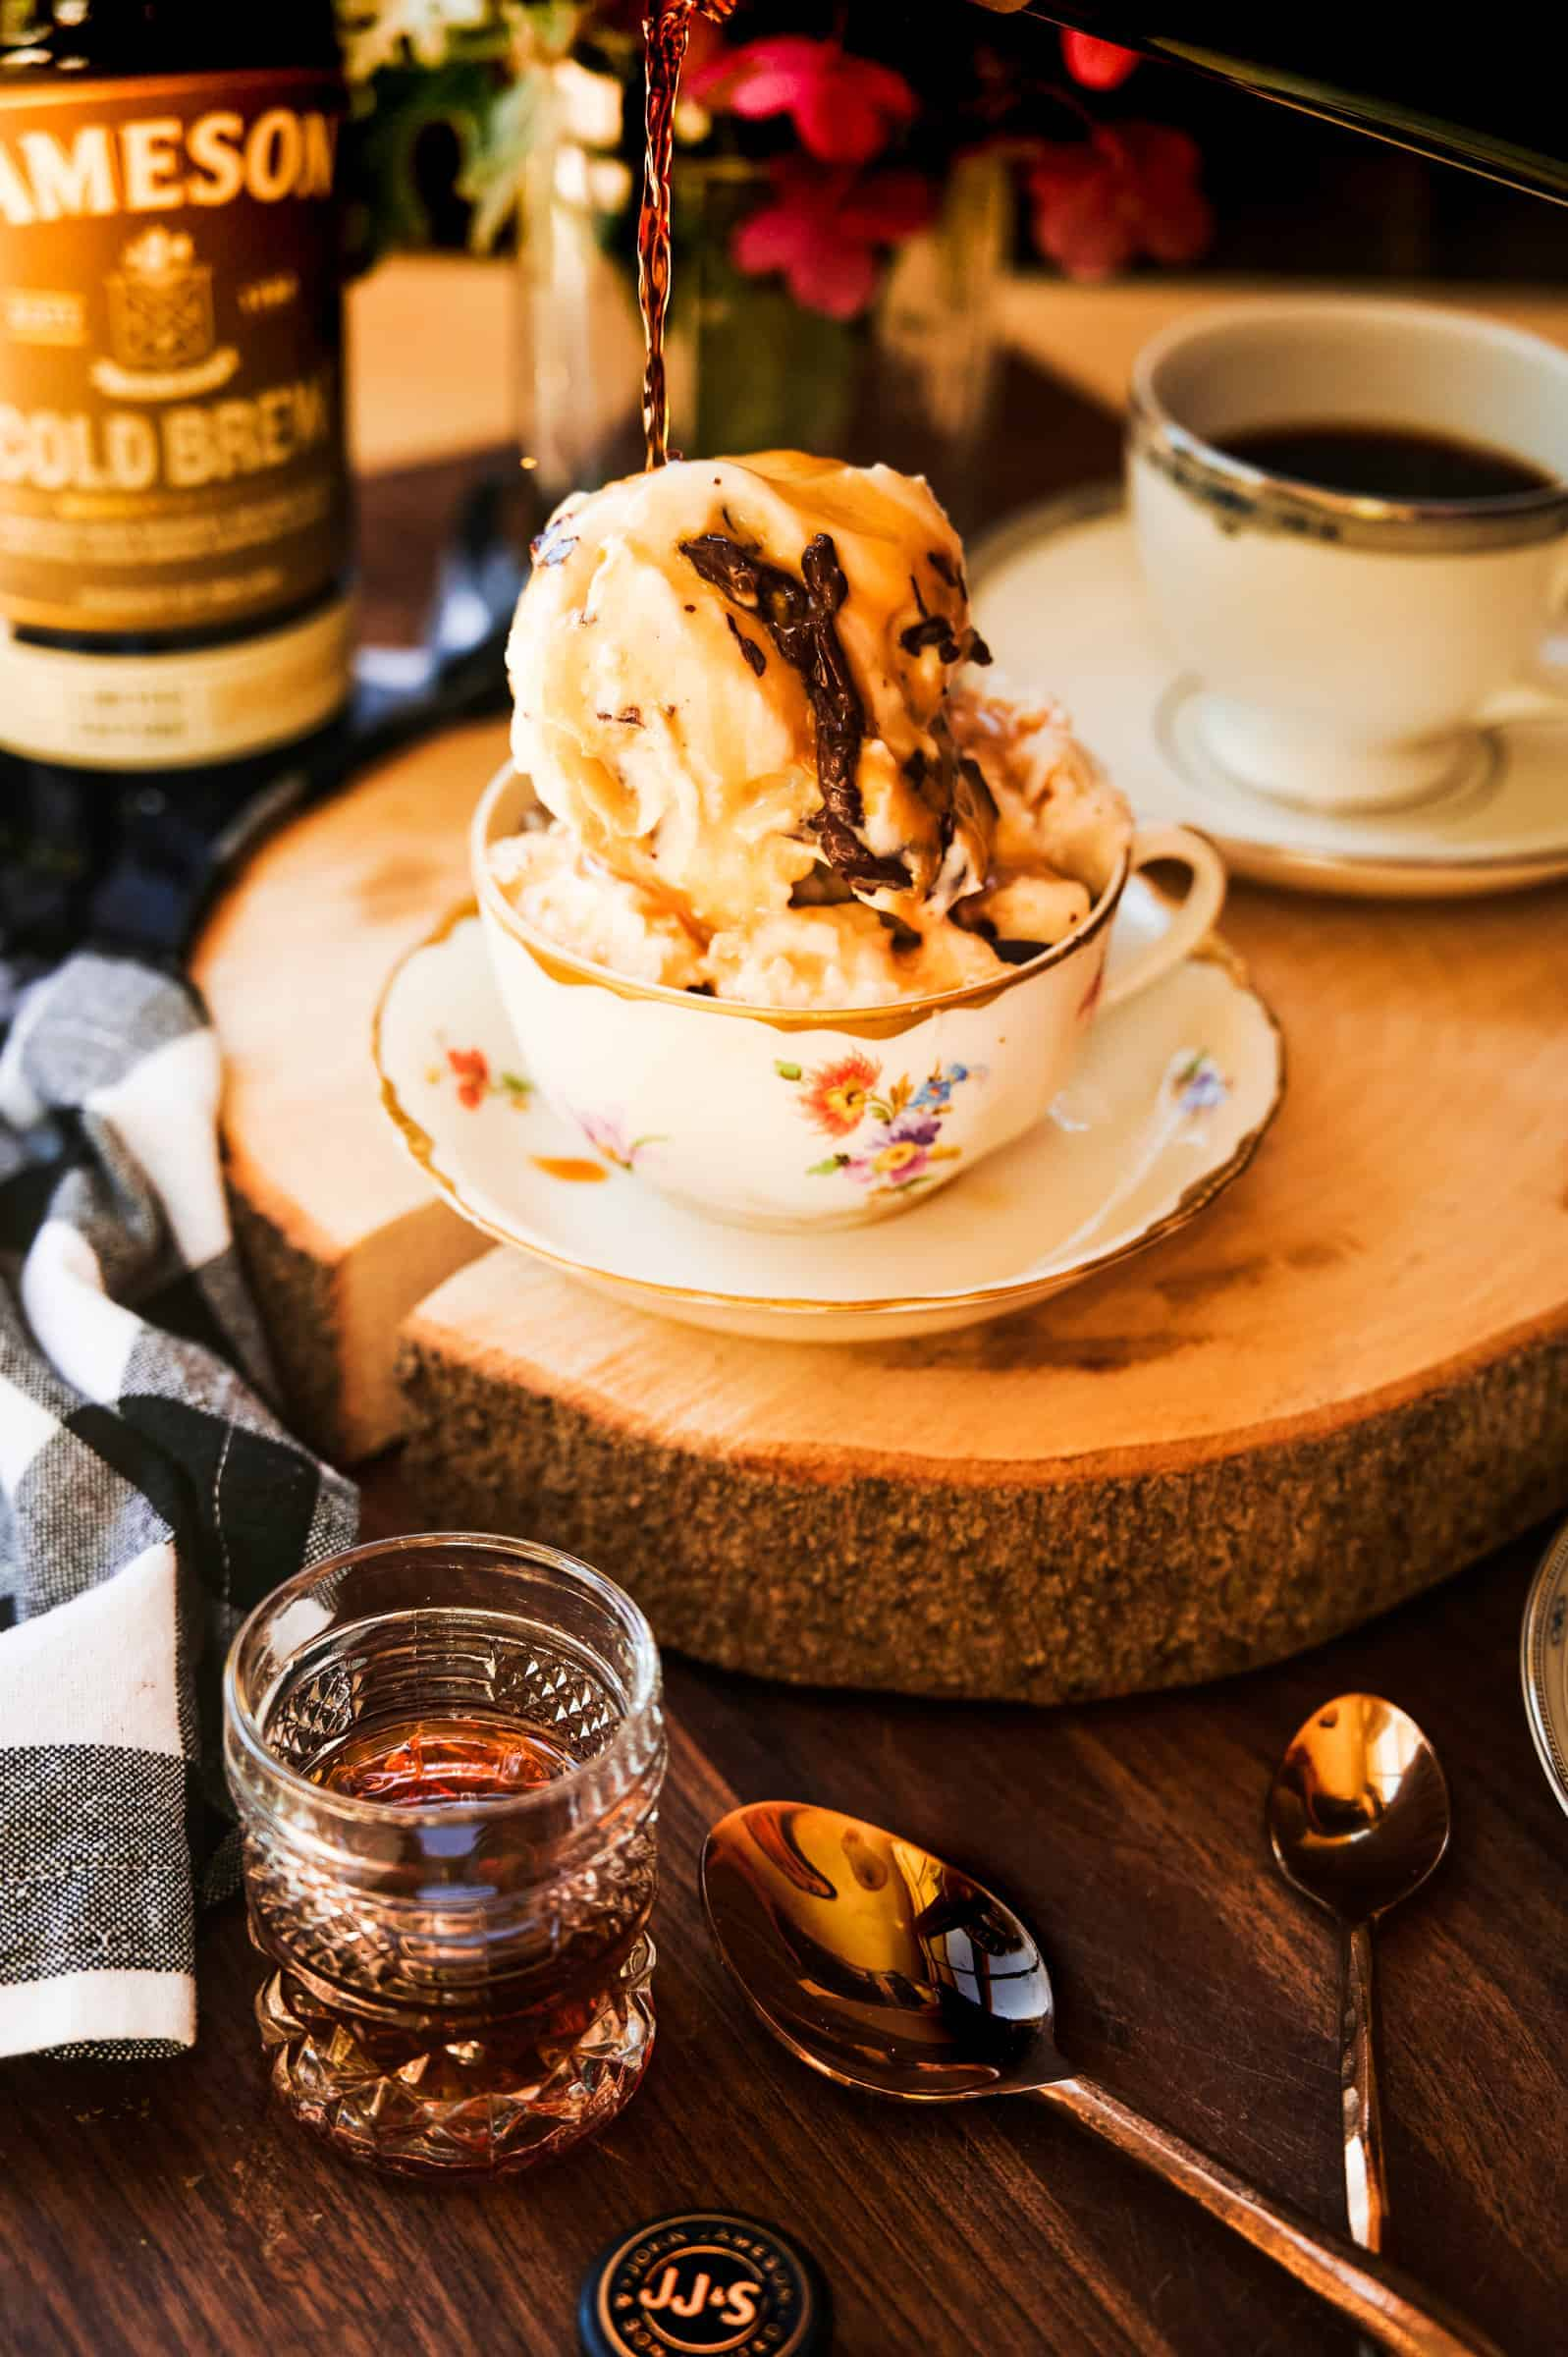 ice cream in a tea cup with hot espresso spilling over and a shot glass of whiskey and copper spoons